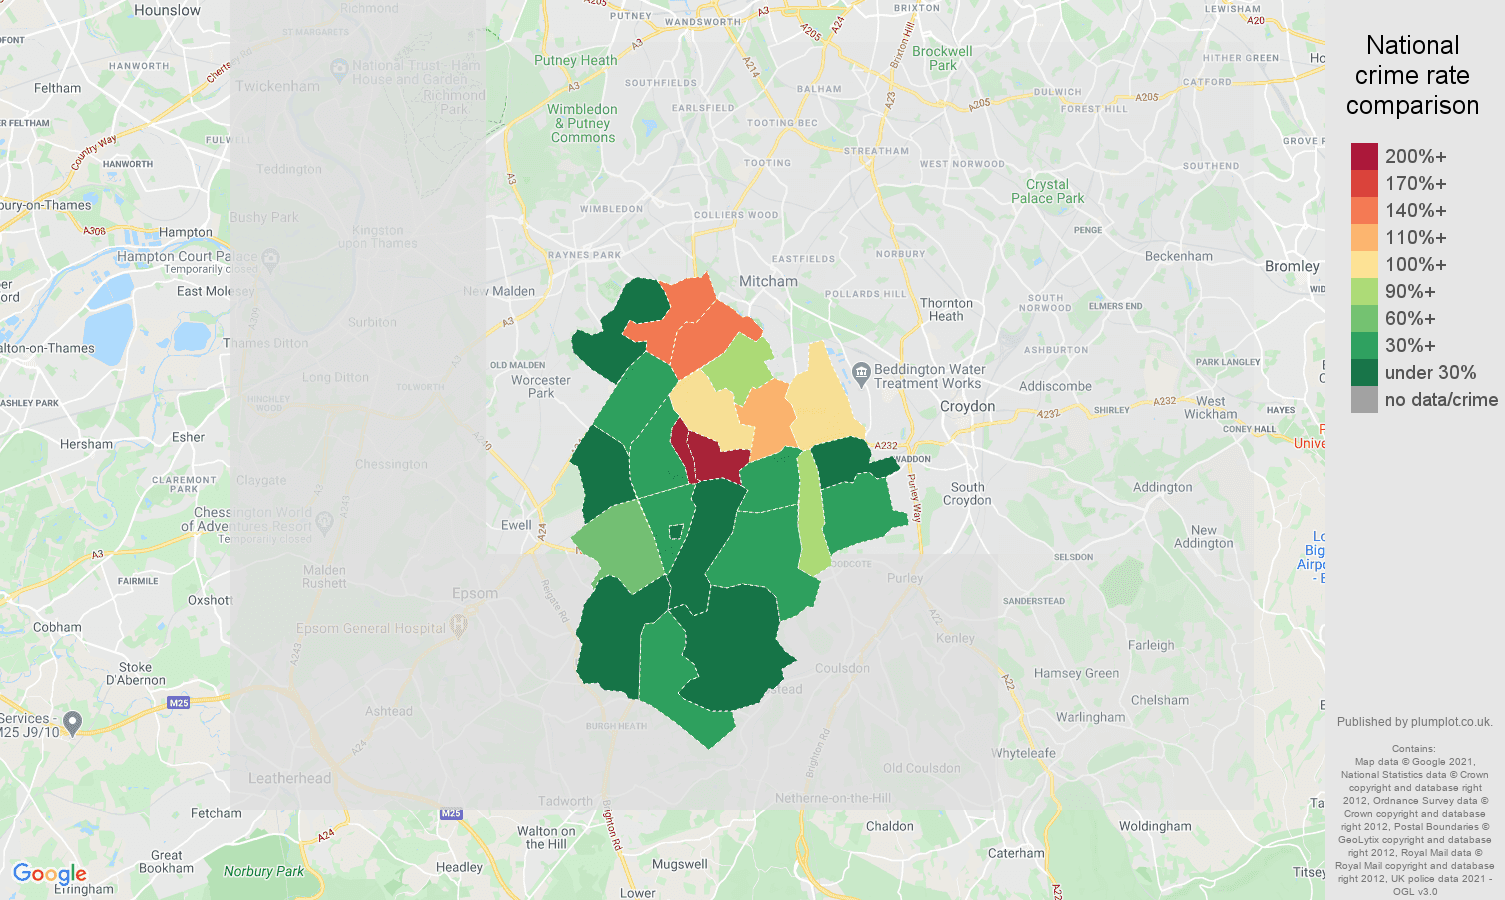 Sutton bicycle theft crime rate comparison map